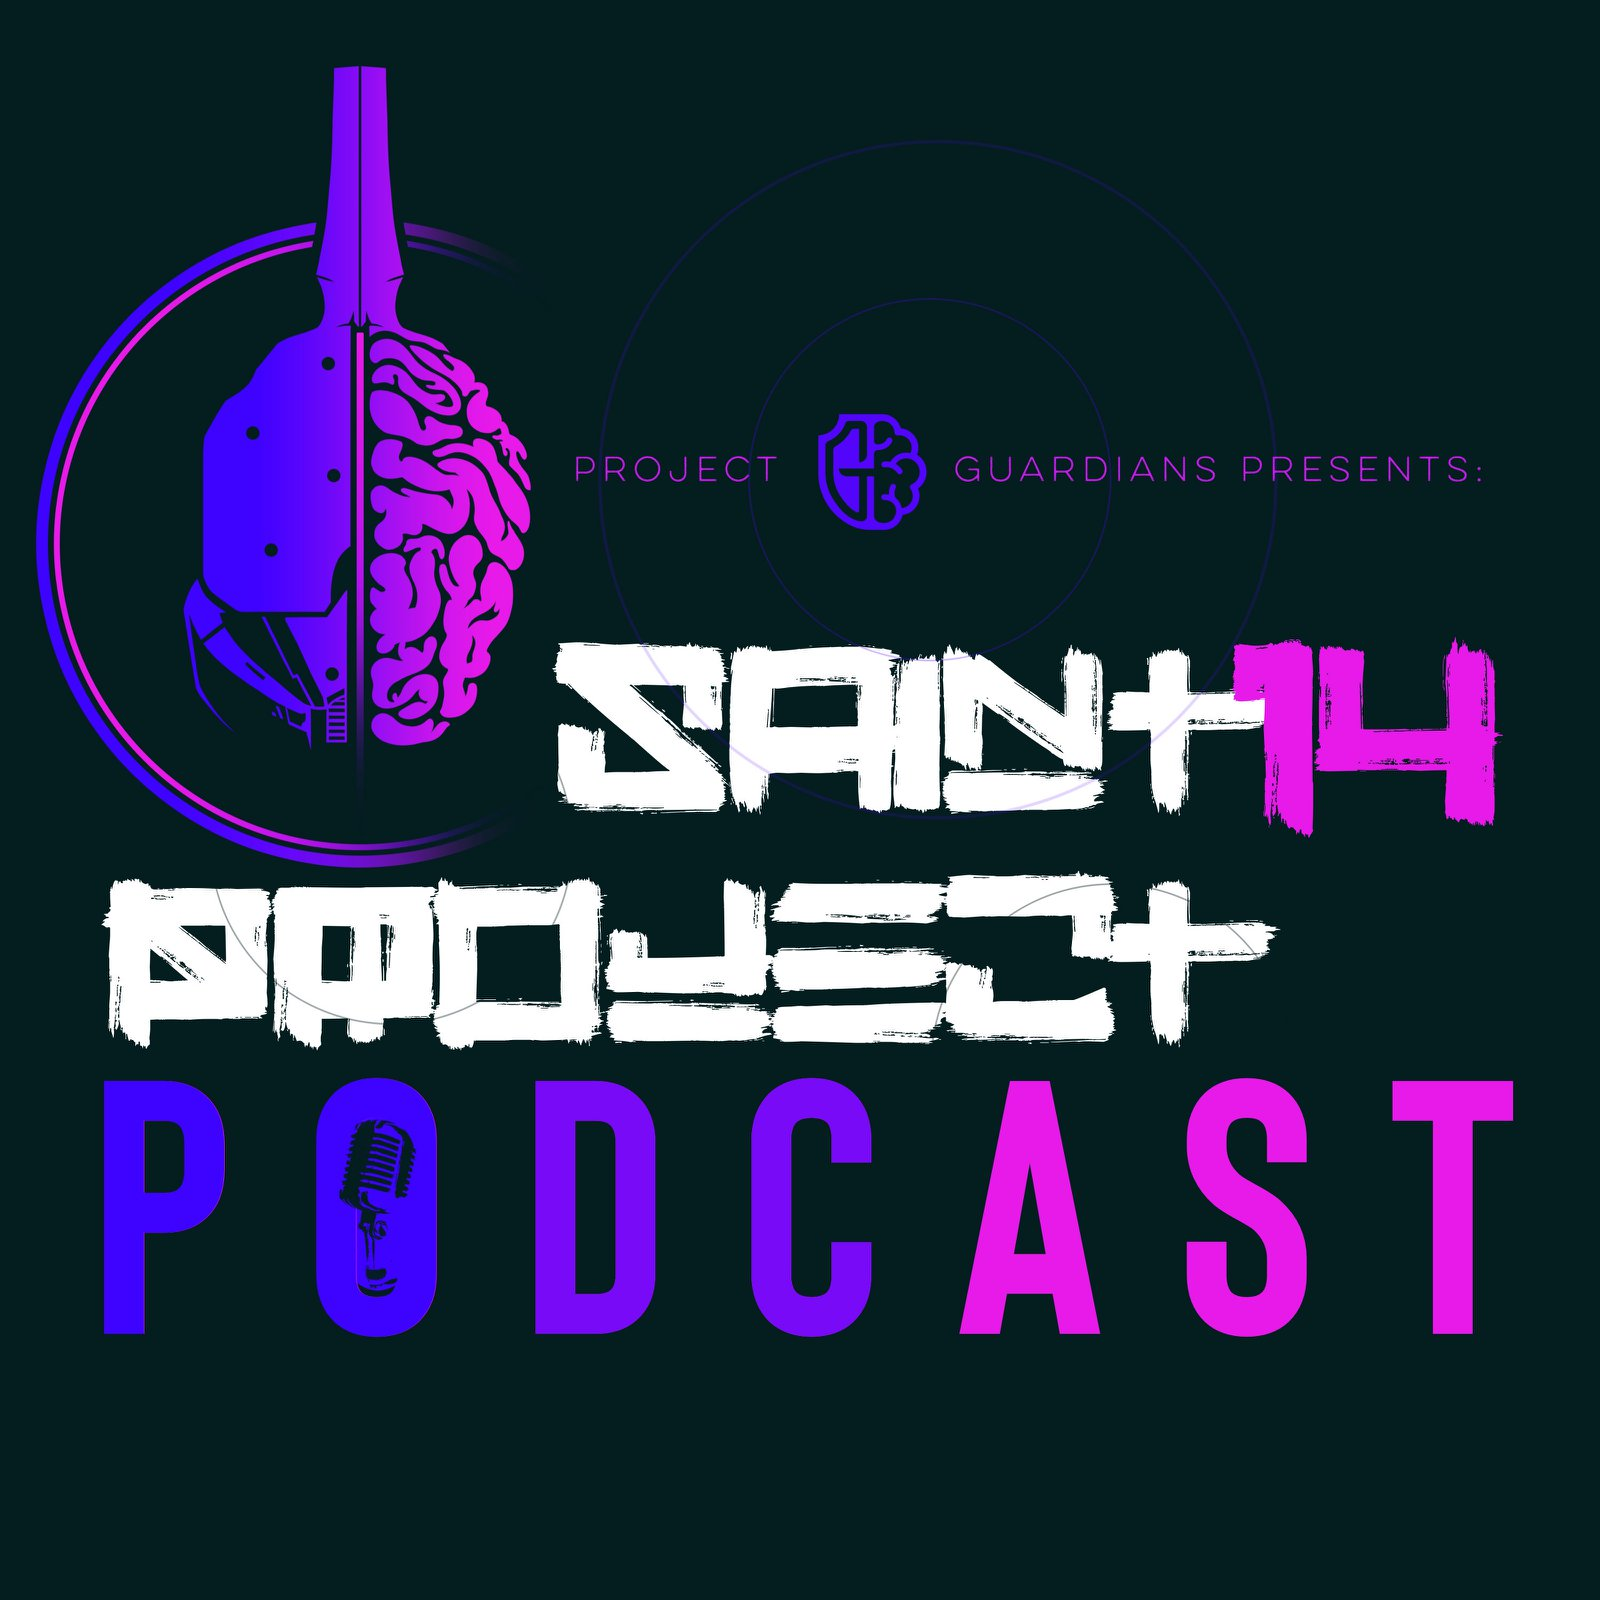 Saint 14 project Podcast